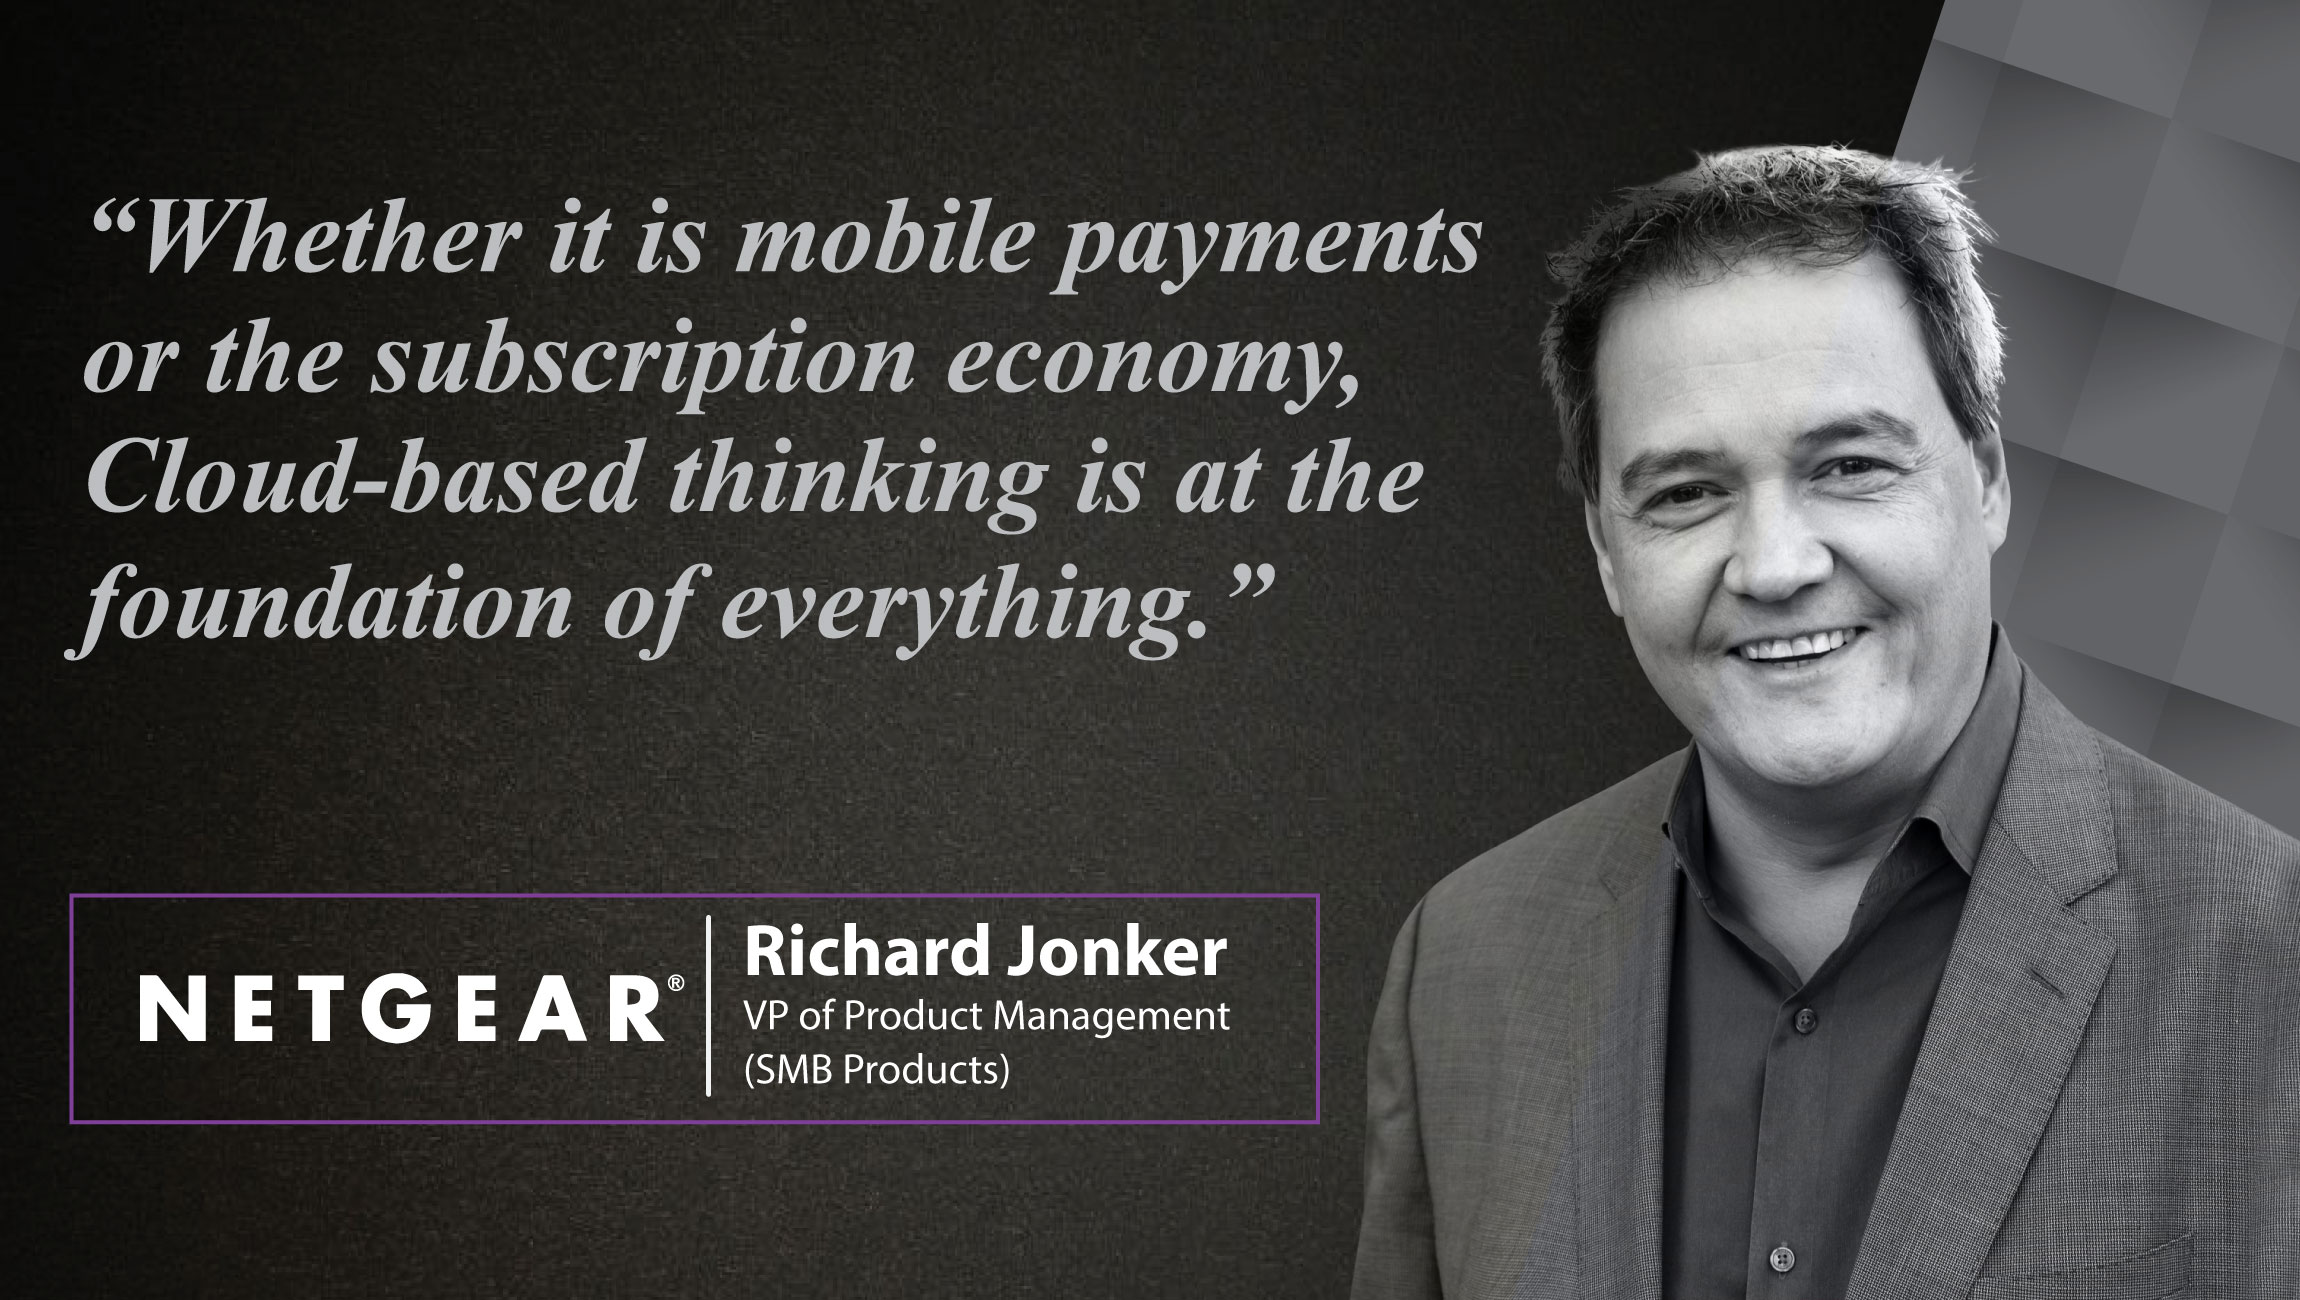 AiThority Interview with Richard Jonker, VP of Product Management (SMB Products) at NETGEAR